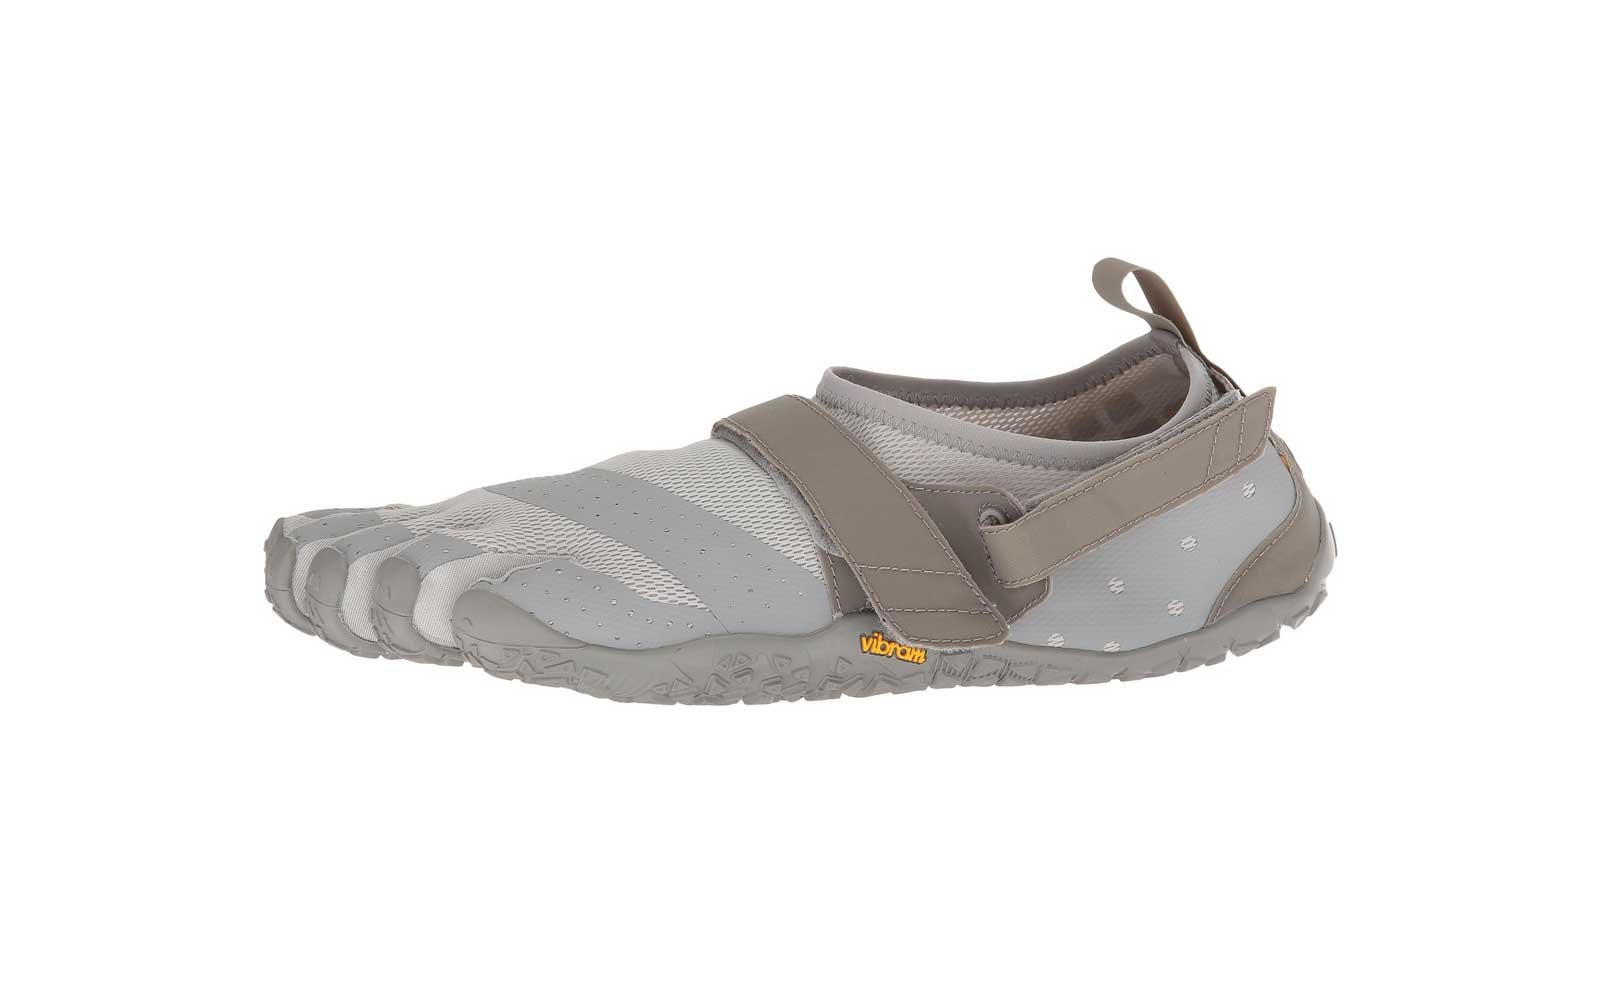 mens vibram water shoes